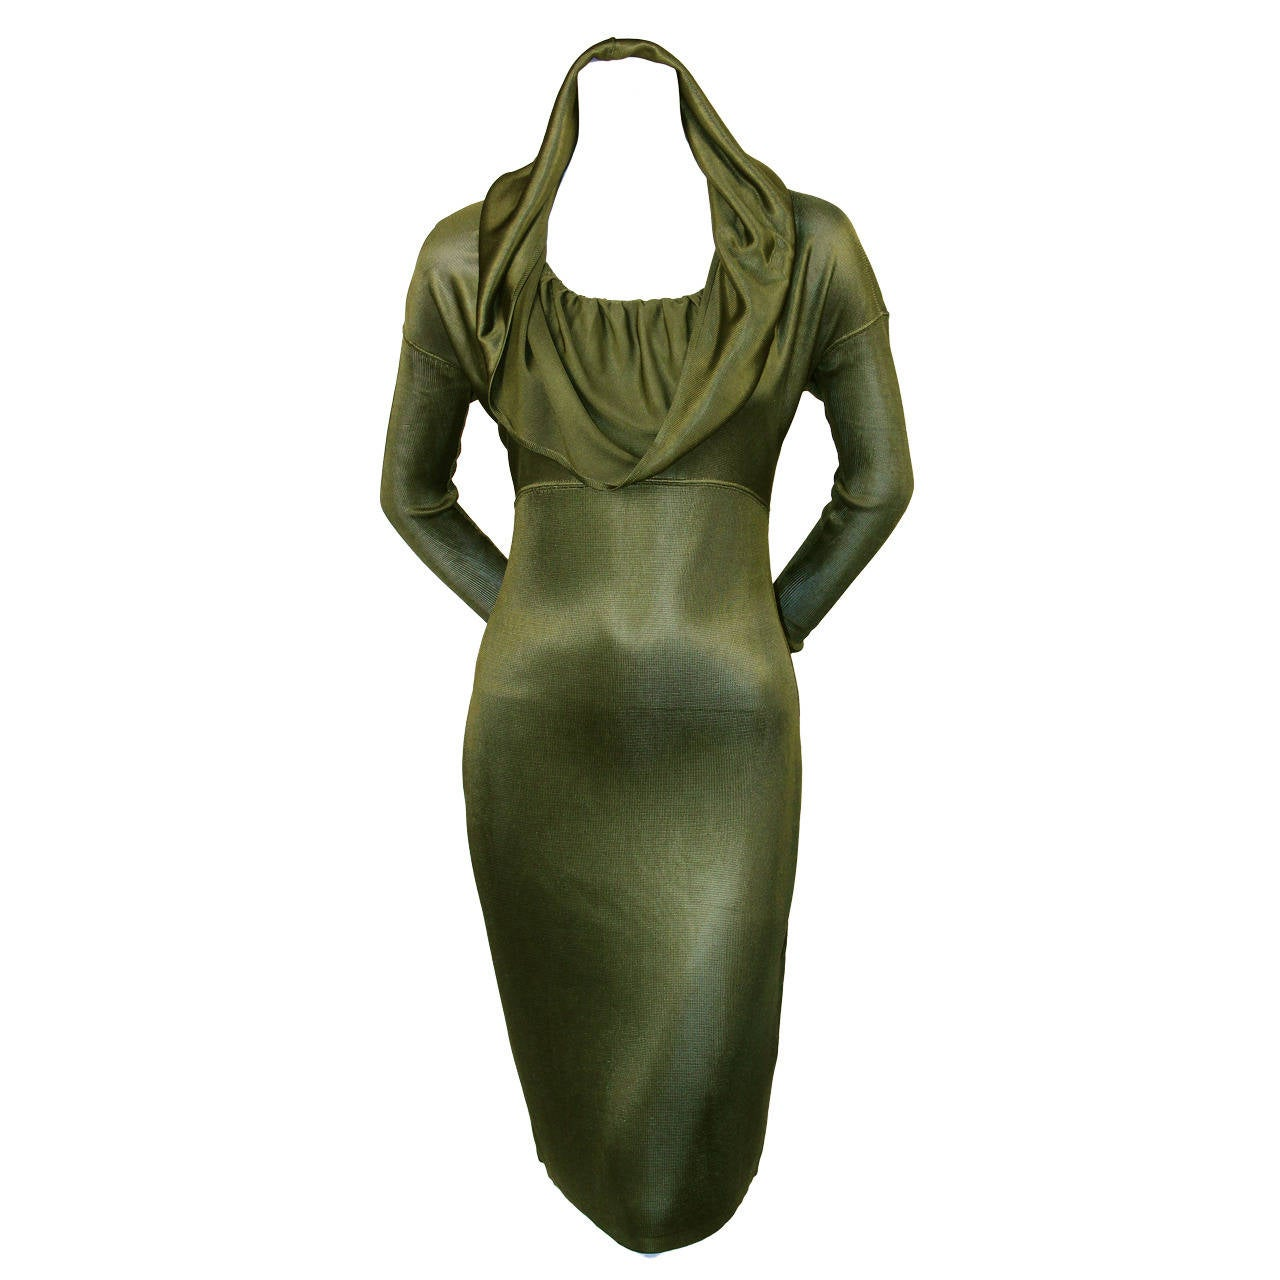 1986 AZZEDINE ALAIA olive viscose hooded dress For Sale